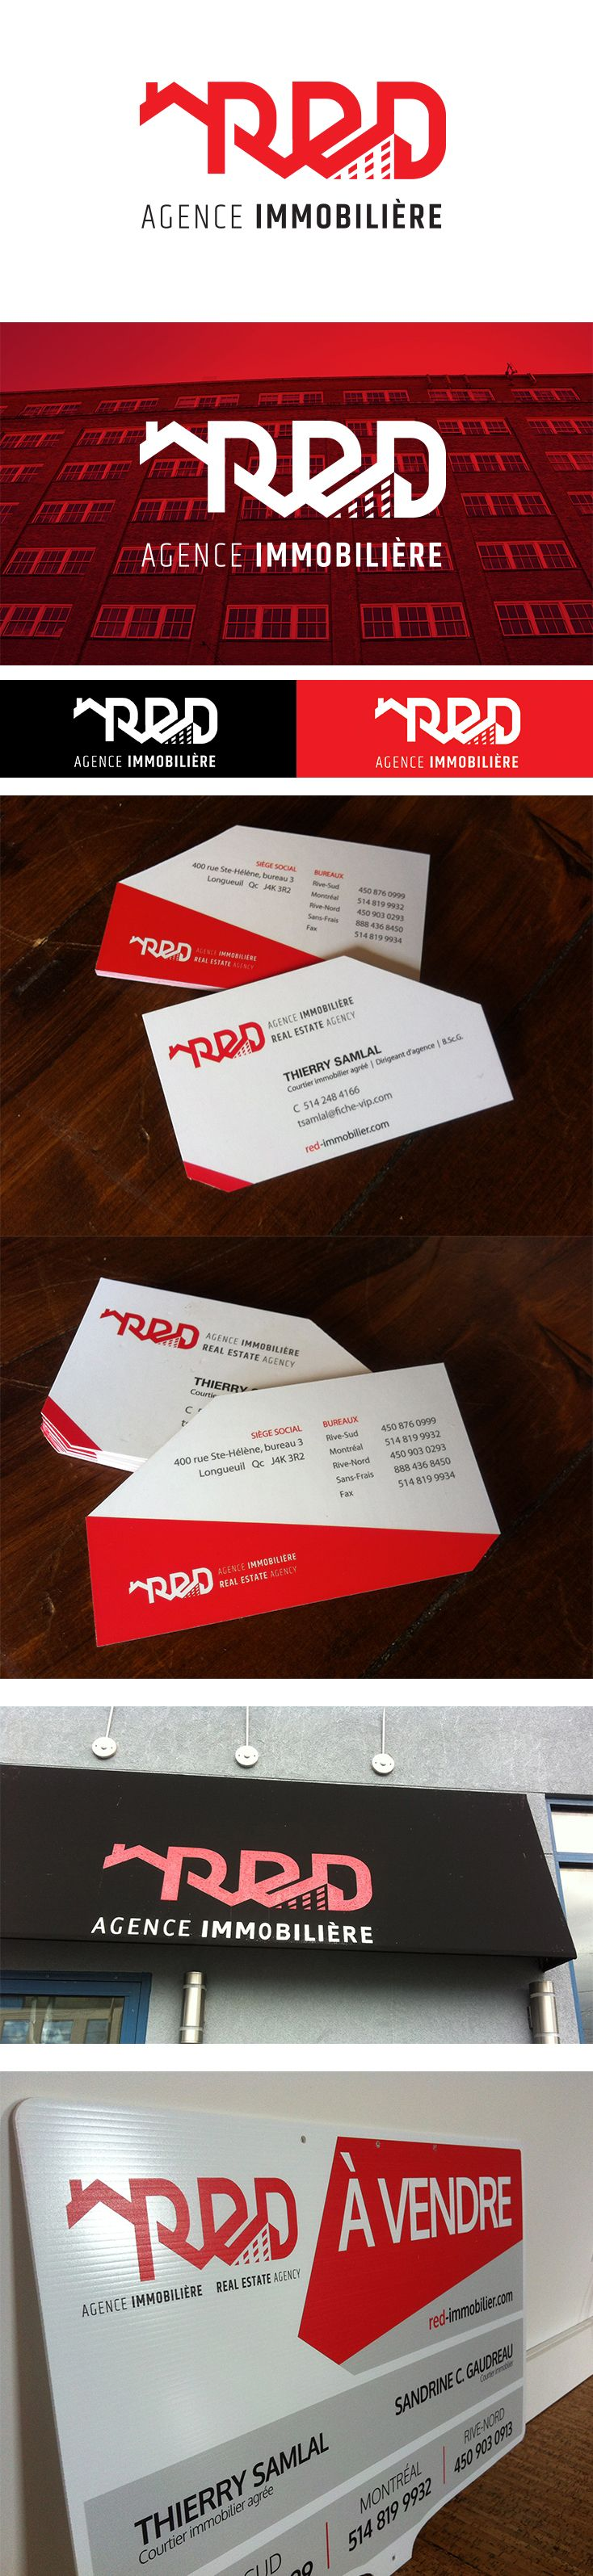 RED Agence Immobilière. Branding complet : #logo #branding #businesscard #graphic #red #black #design #agrumes